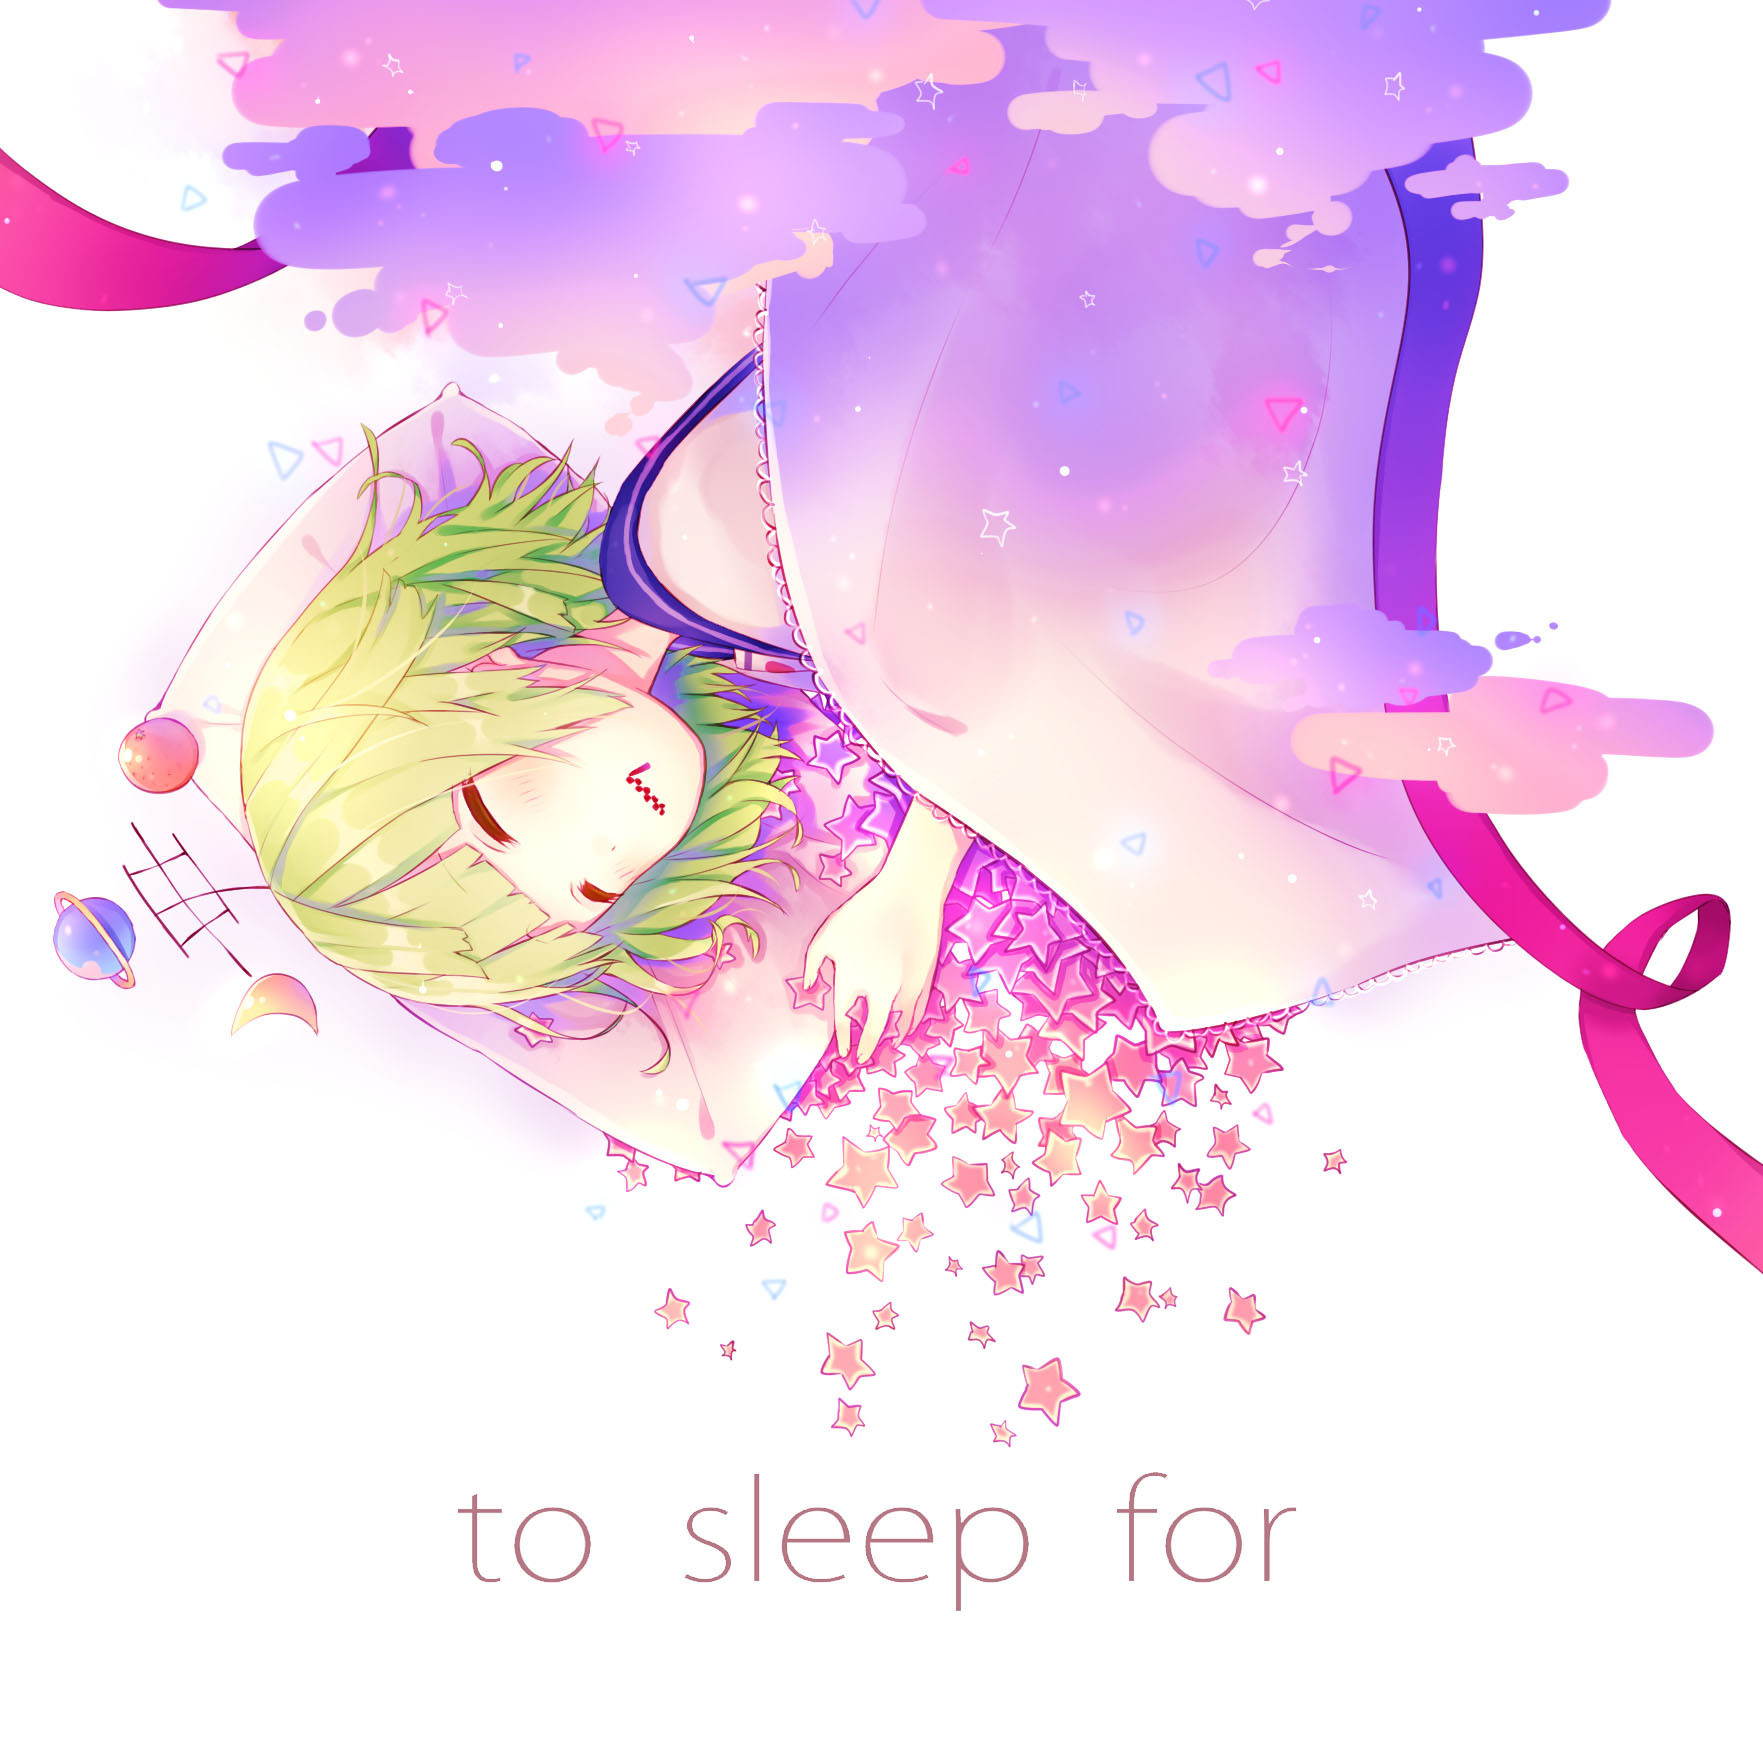 to sleep for ぴぼ feat 滲音かこい dl版 ぴぼbooth booth